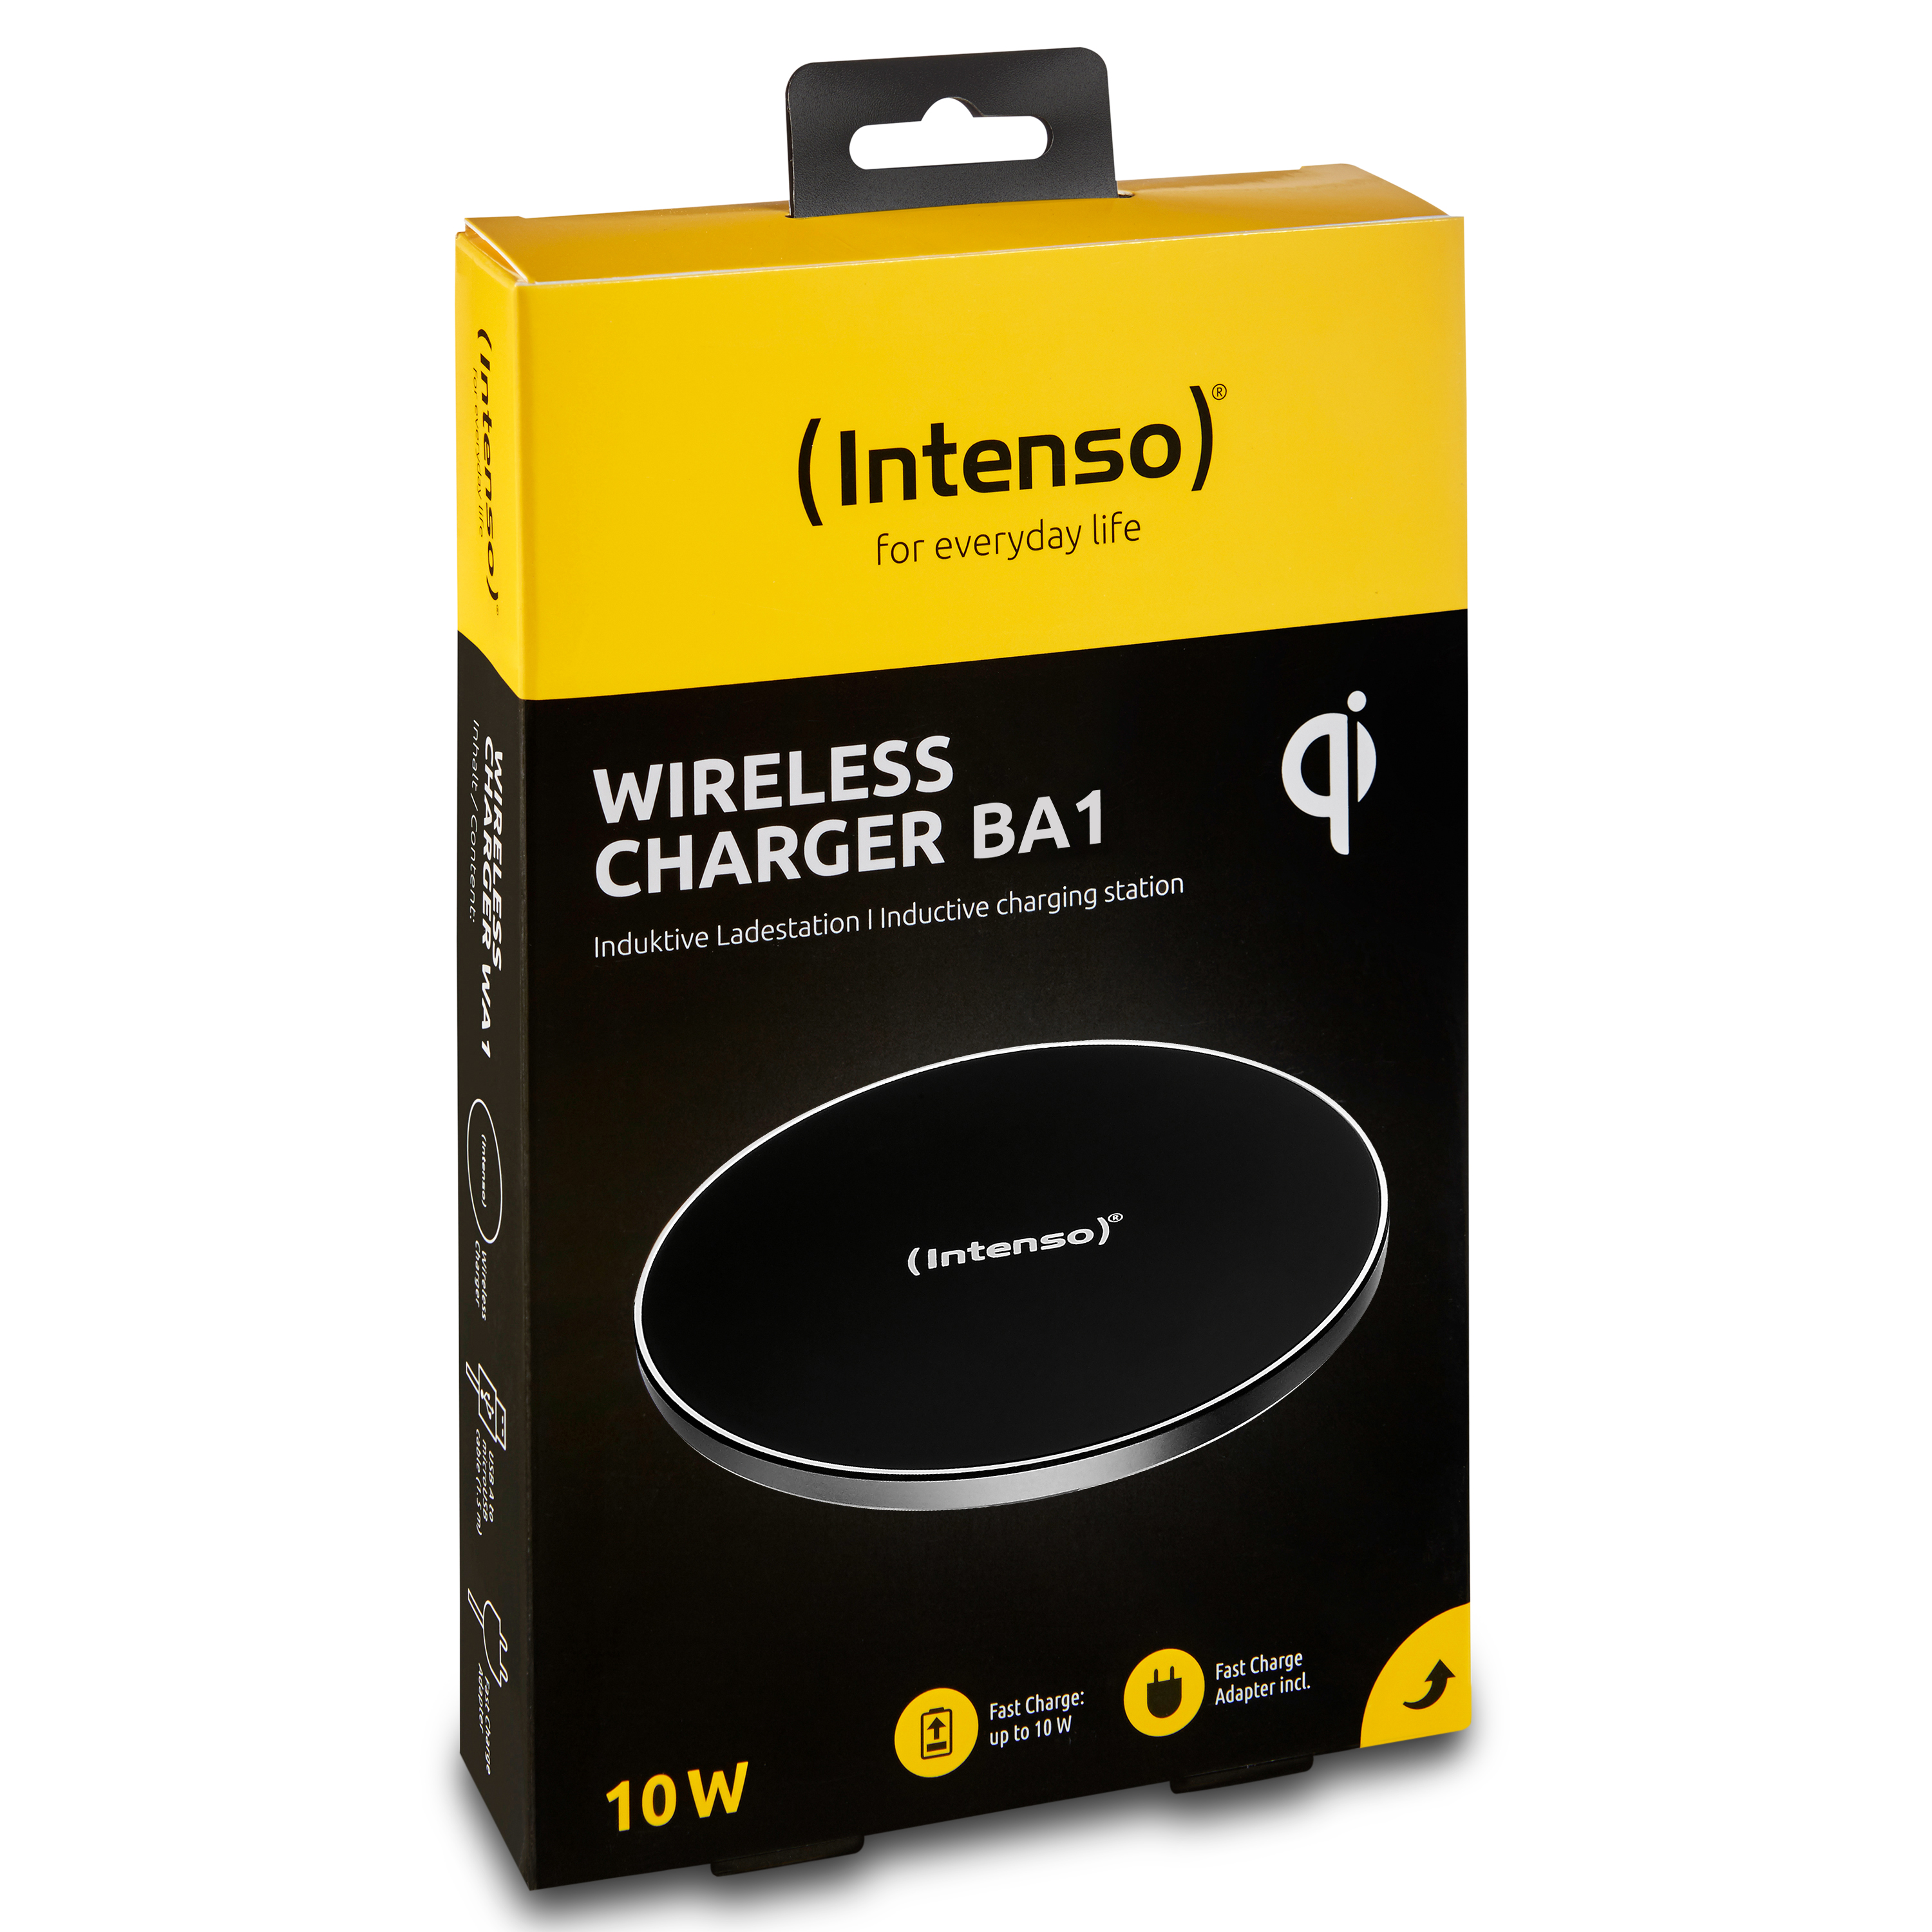 Intenso Wireless Charger